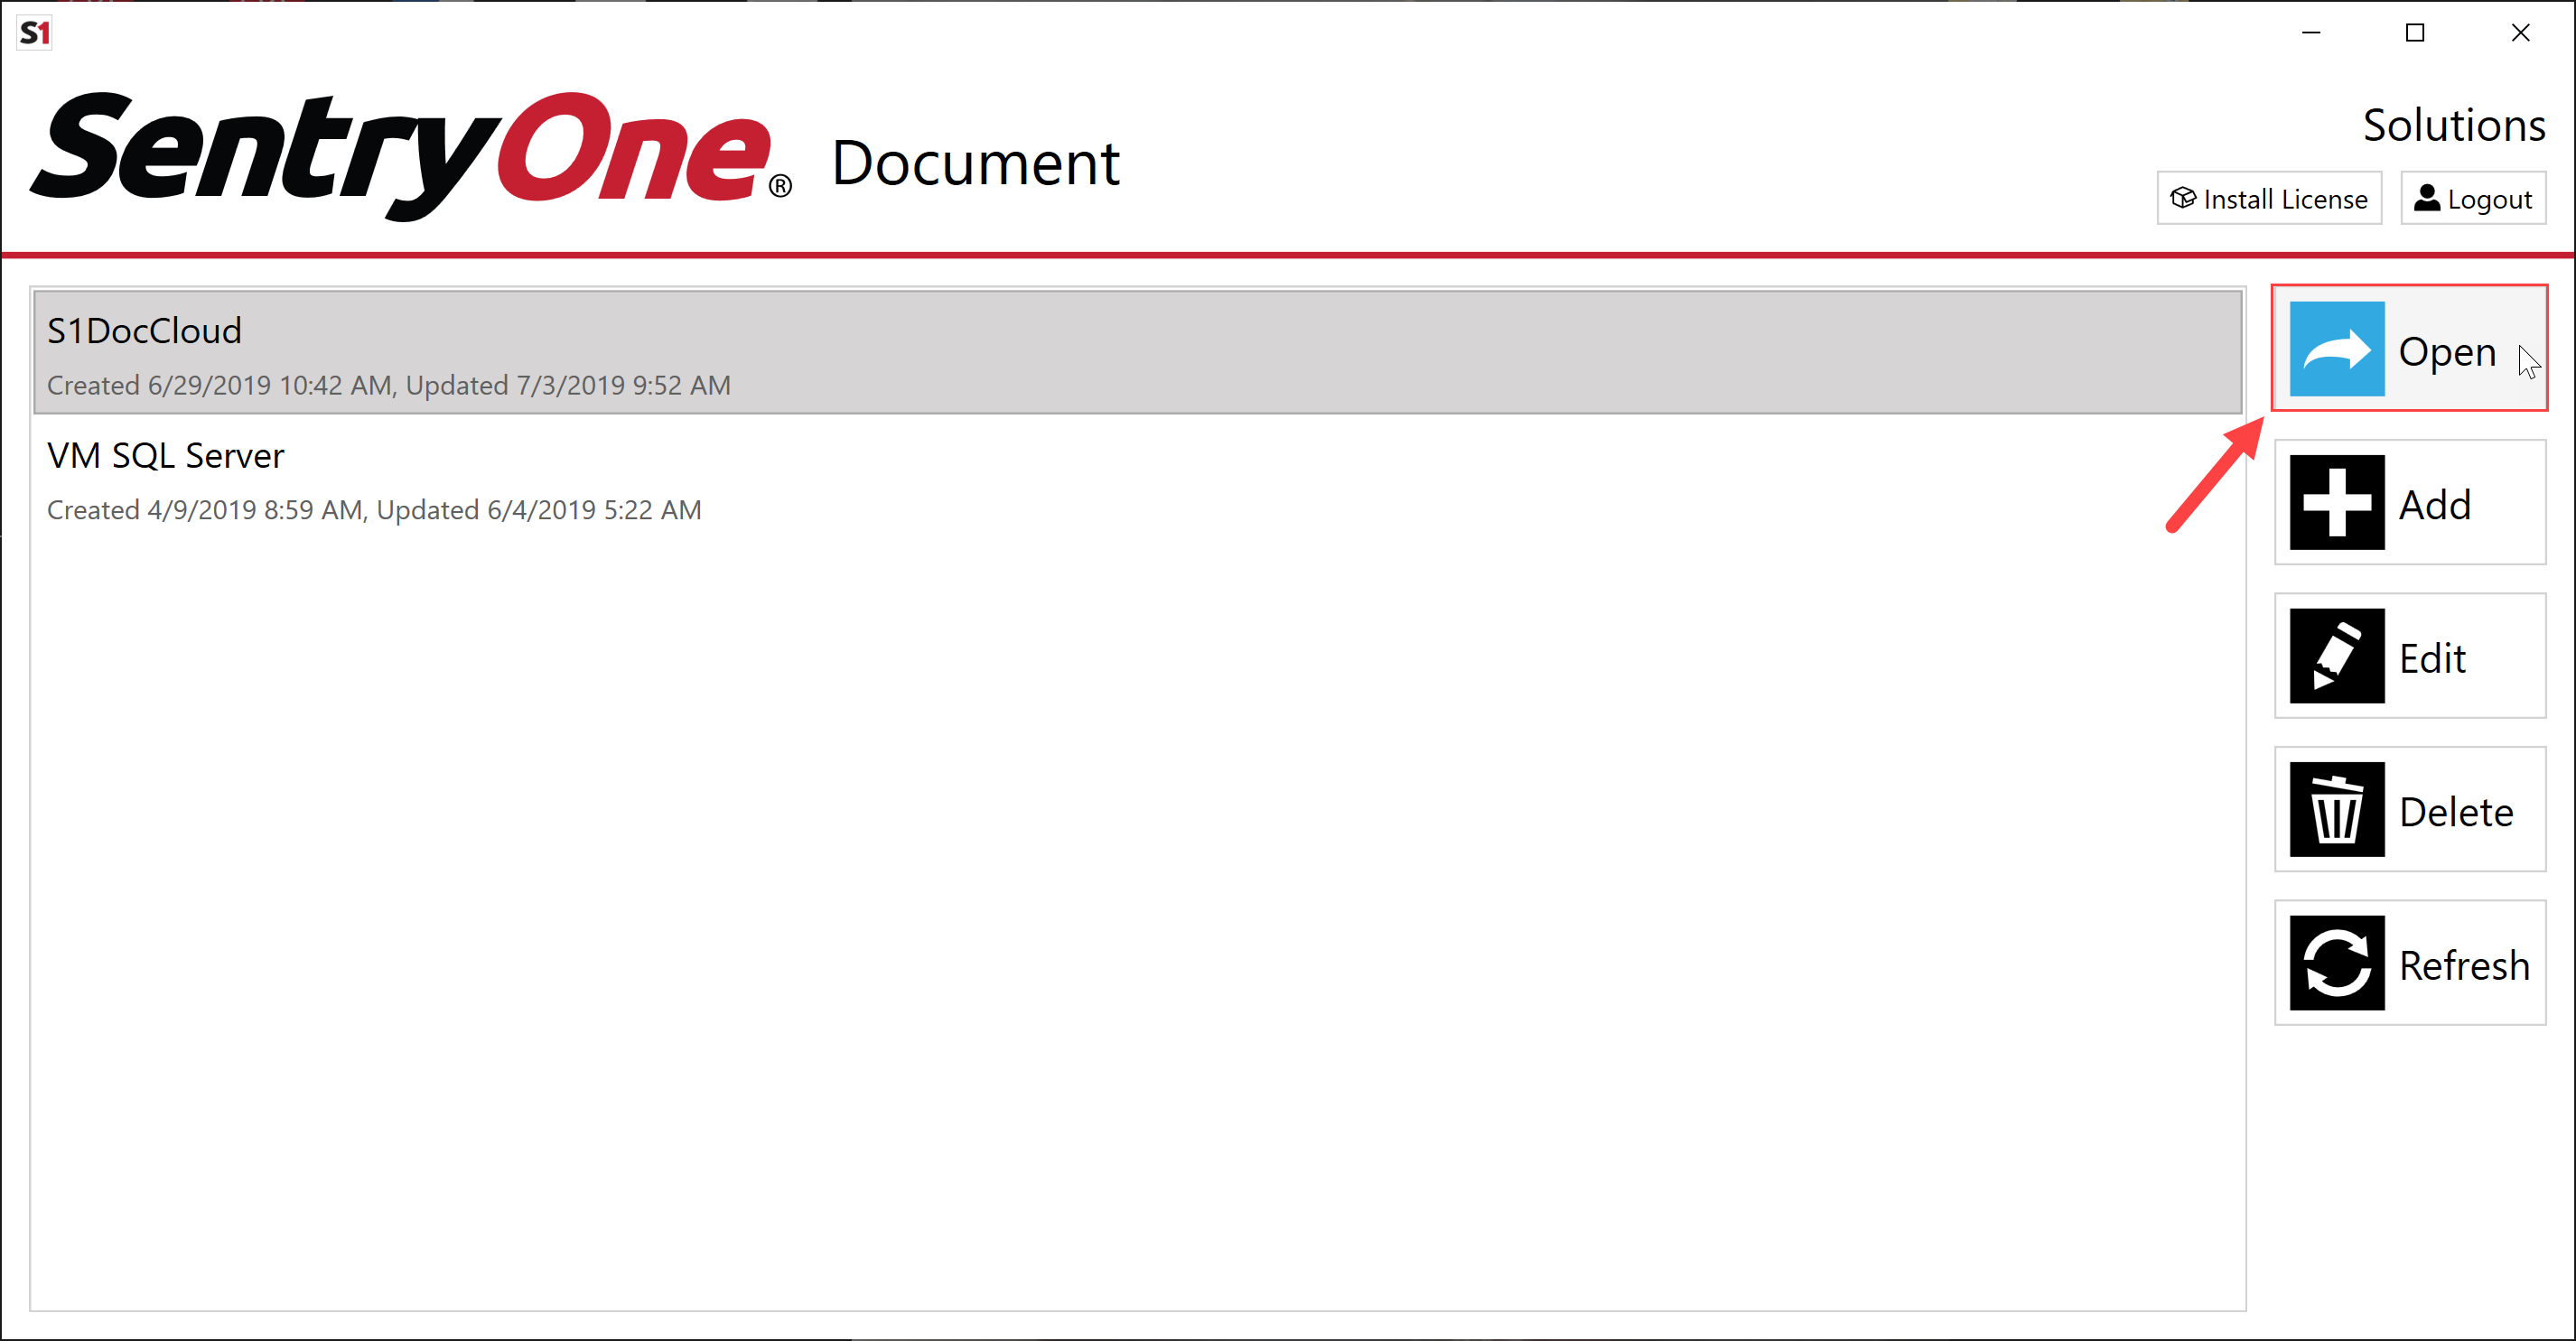 SentryOne Document Solution Configuration Tool Open Solution